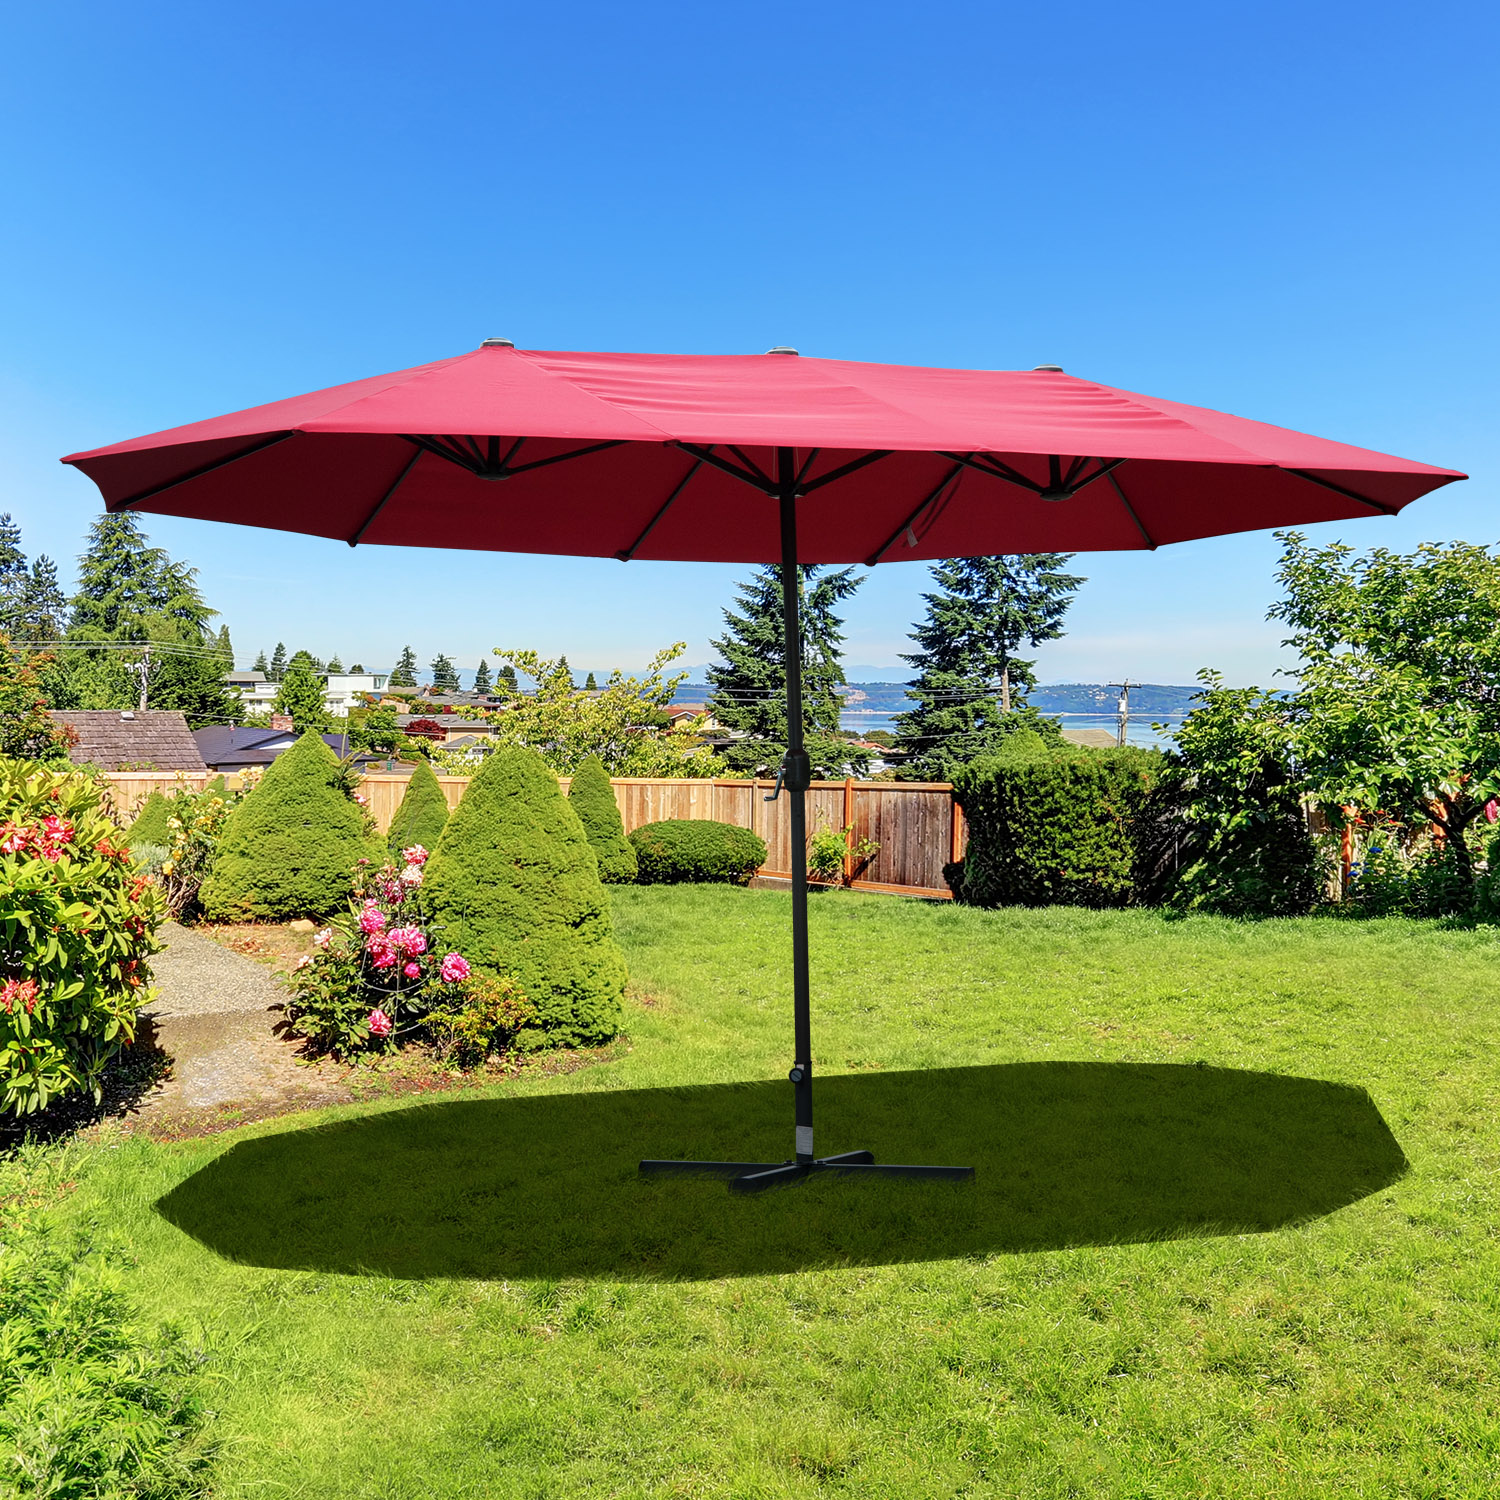 Image of CAD $154.99 Outsunny 15ft Outdoor Twin Patio Umbrella Double-Sided Market Parasol Sun Shelter with Crank Wine Red / Canada 25093585654